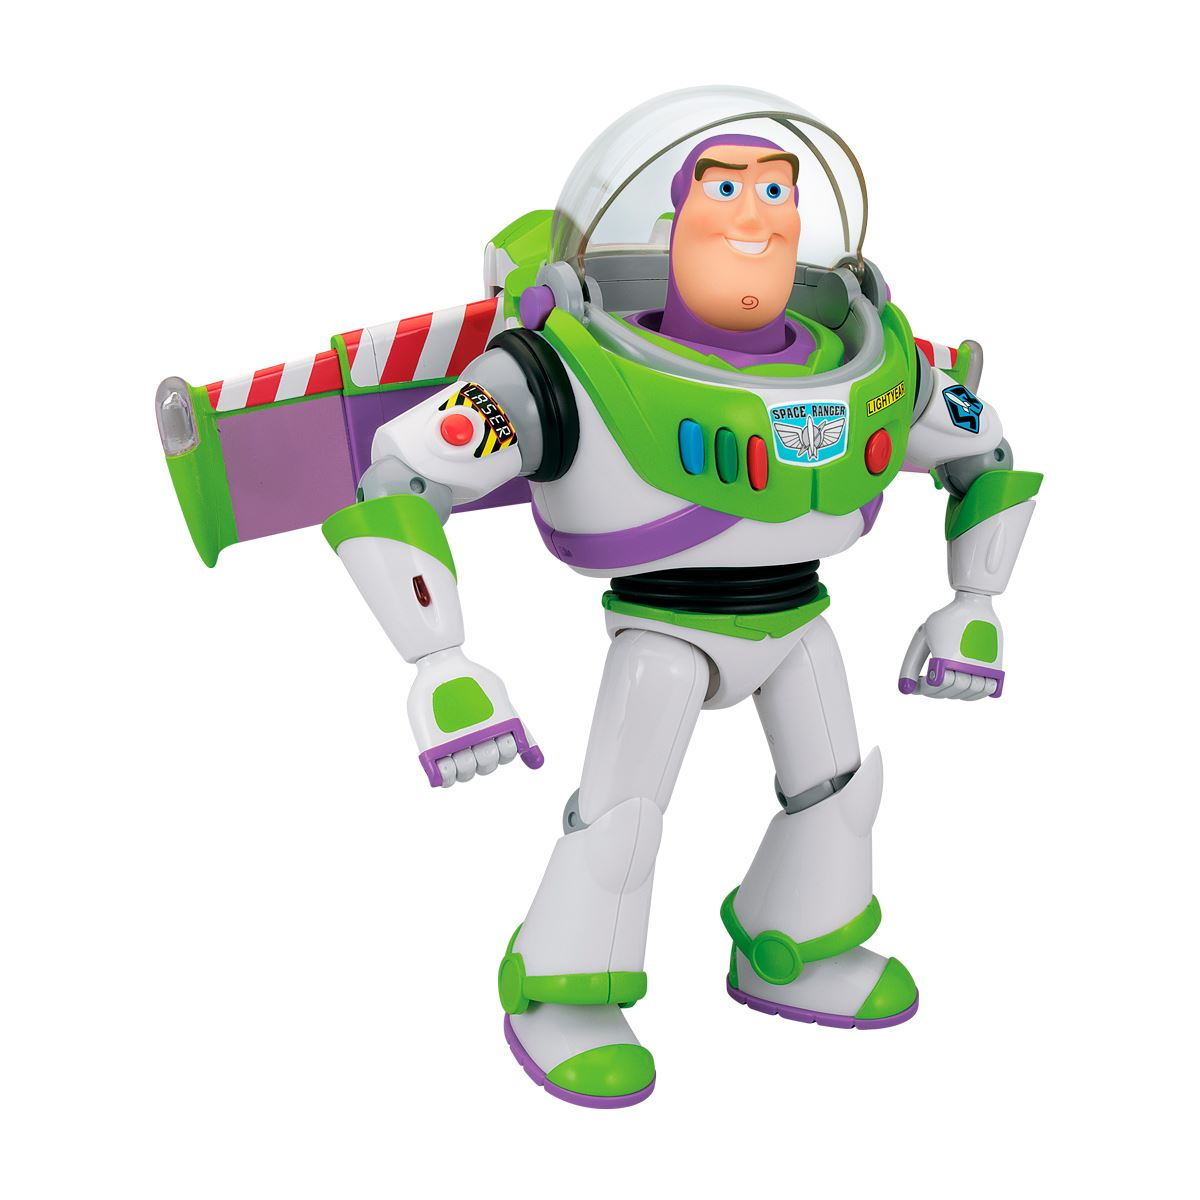 Buzz lightyear  - Sanborns